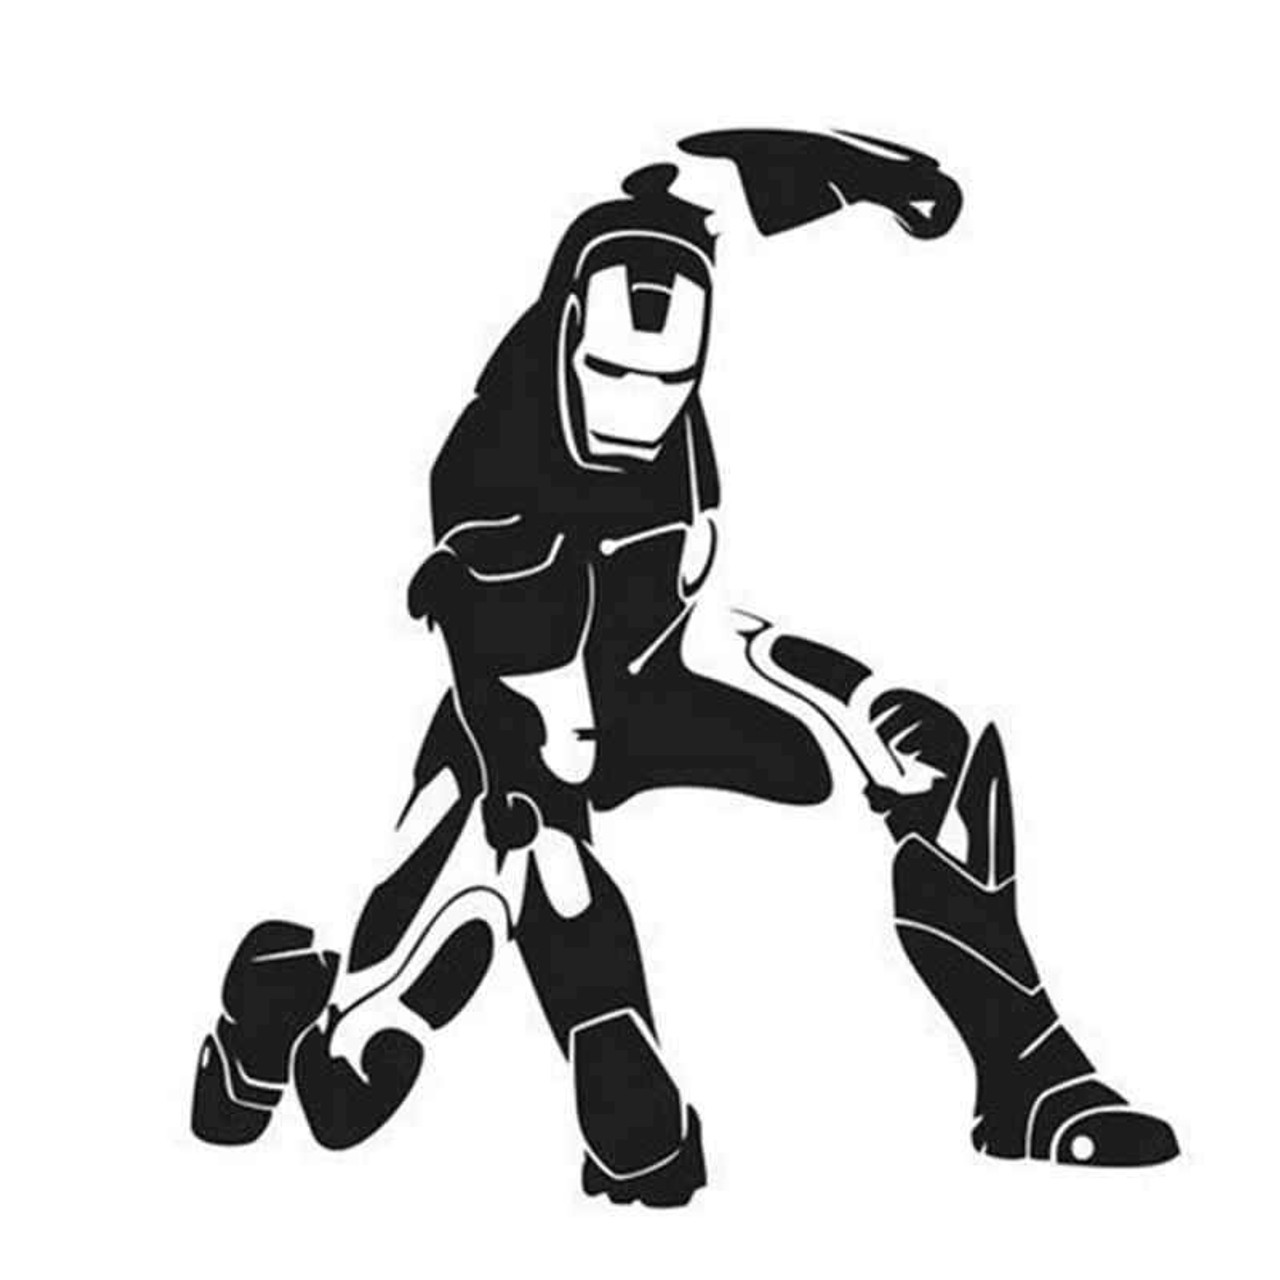 Ironman 606 vinyl sticker